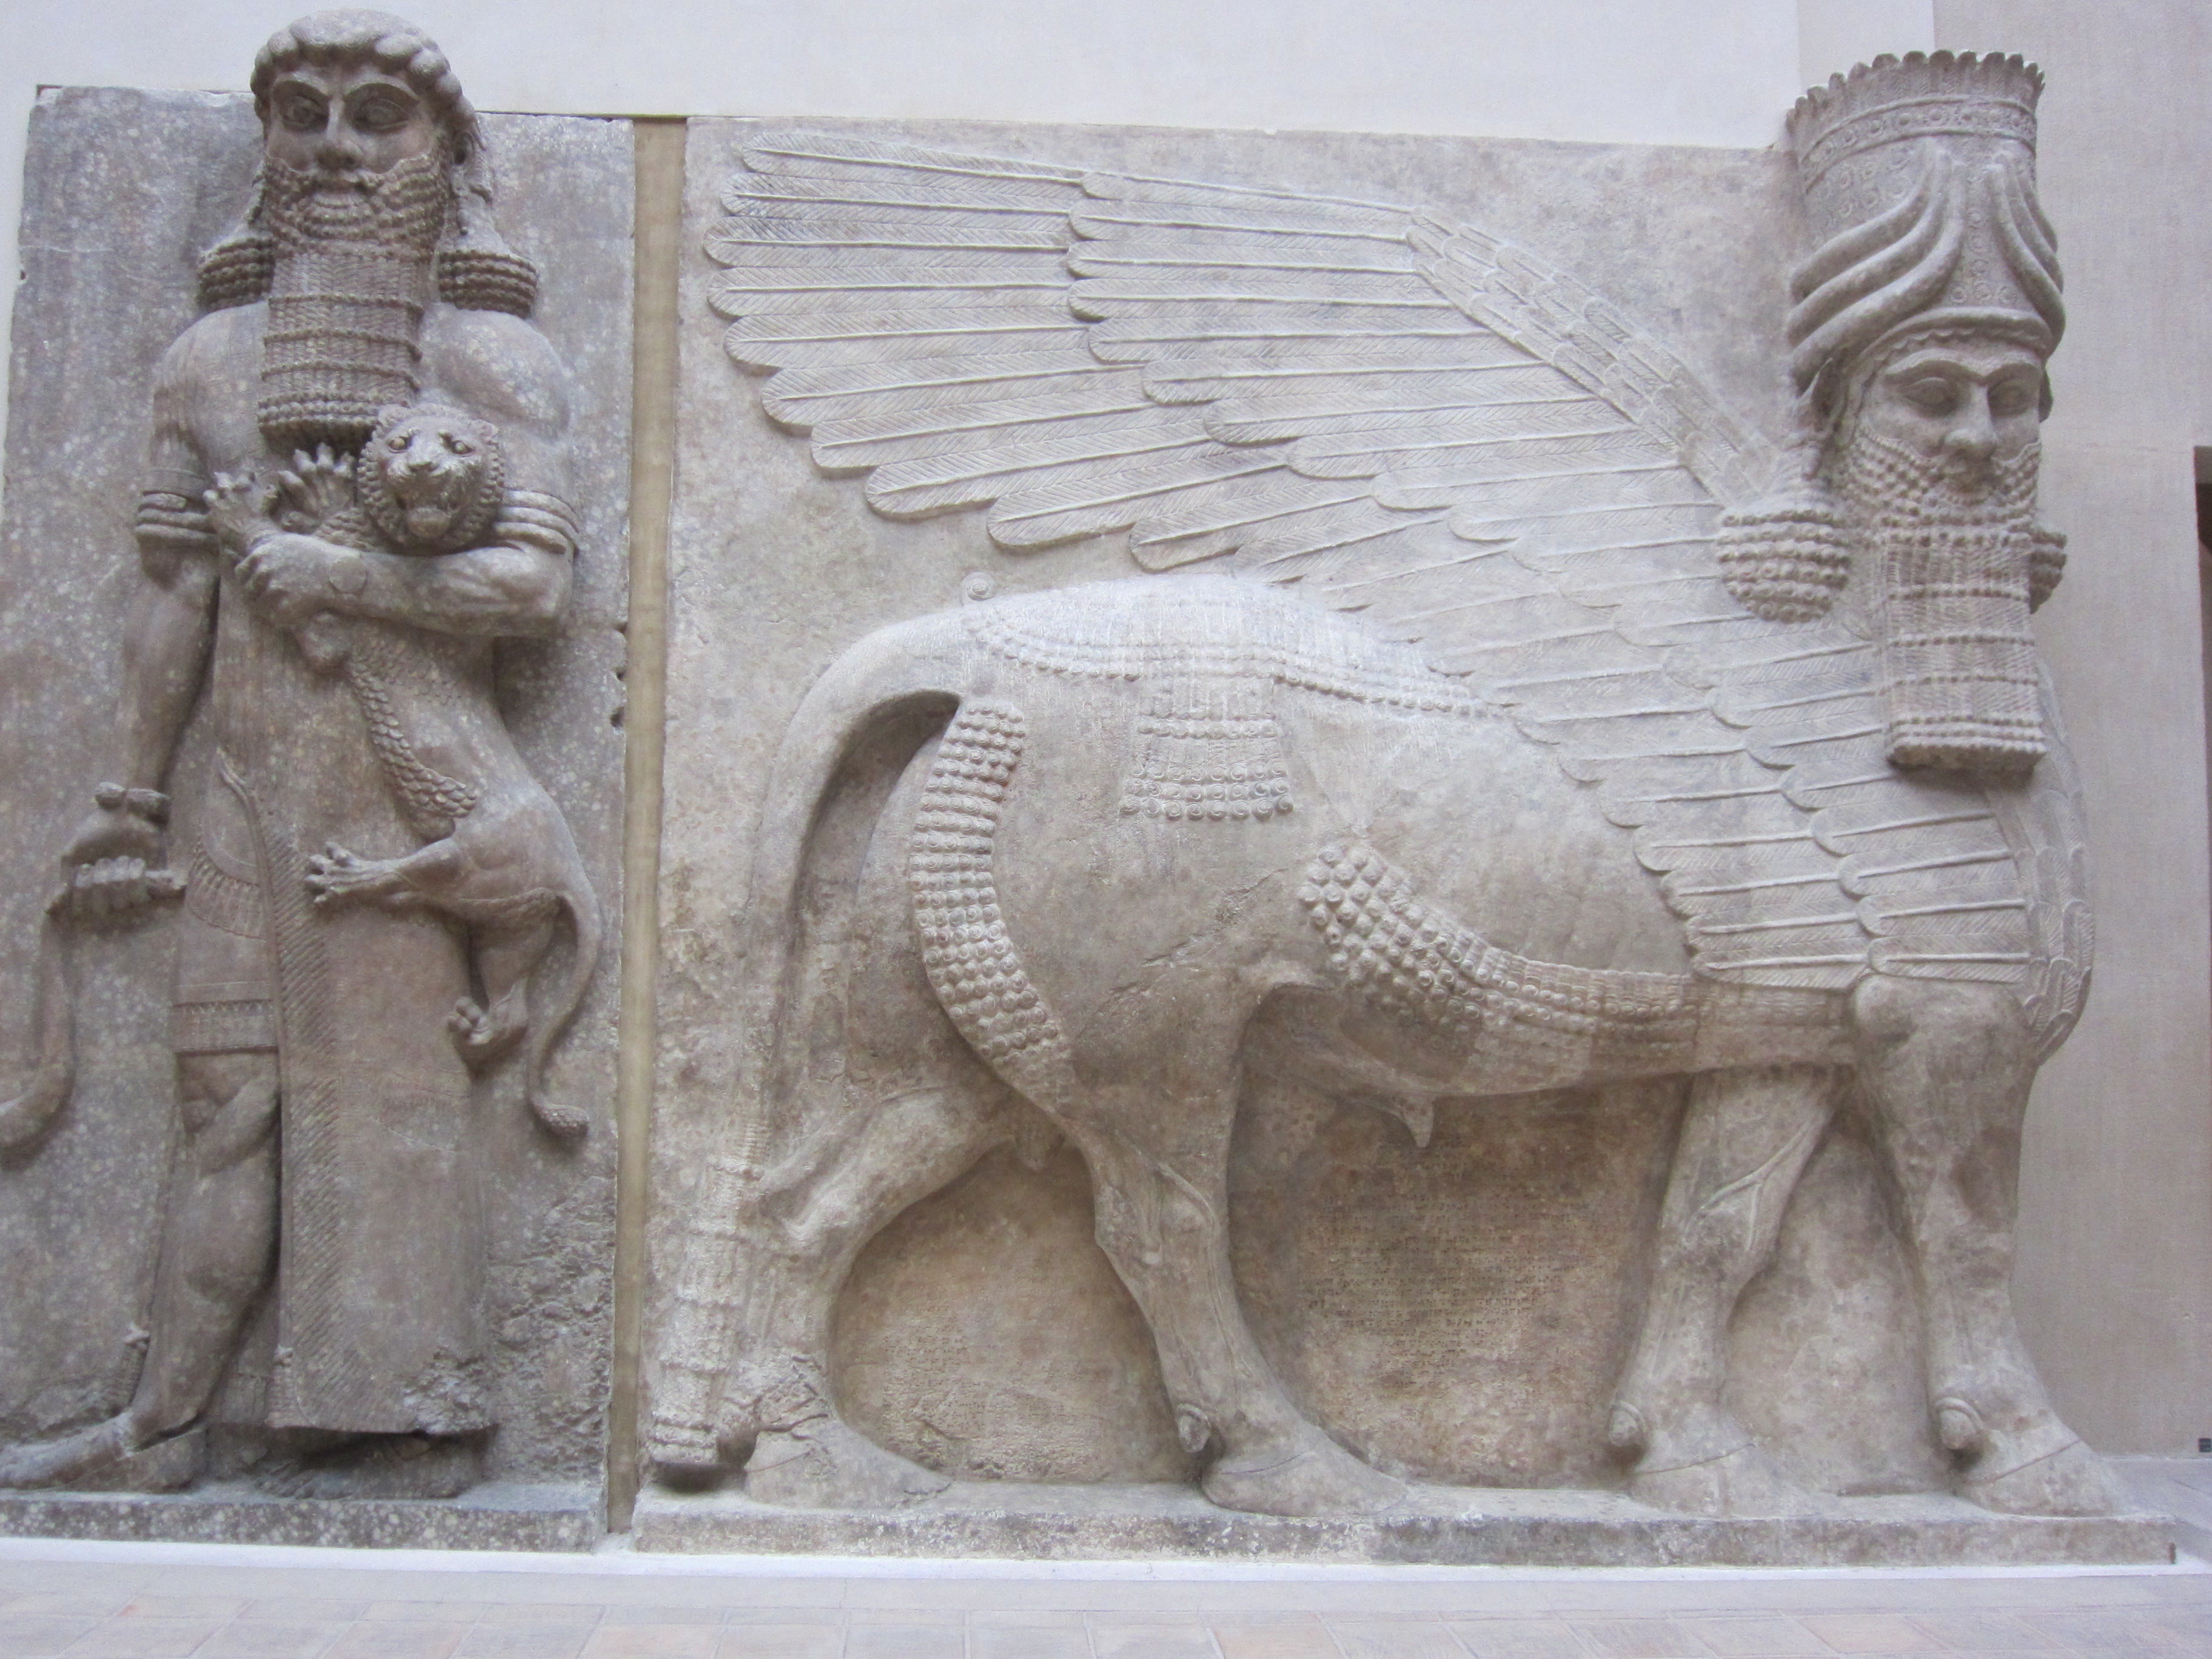 an analysis of the summerian epic of gilgamesh Of gilgamesh gilgamesh, the semi-legendary sumerian king who ruled the city of uruk around 2700 bce, is the subject of the world's first great epic poem gilgamesh was a roguish king whose lusty appetites were resented by his subjects, who prayed for a deliverer to punish gilgamesh for his sins.